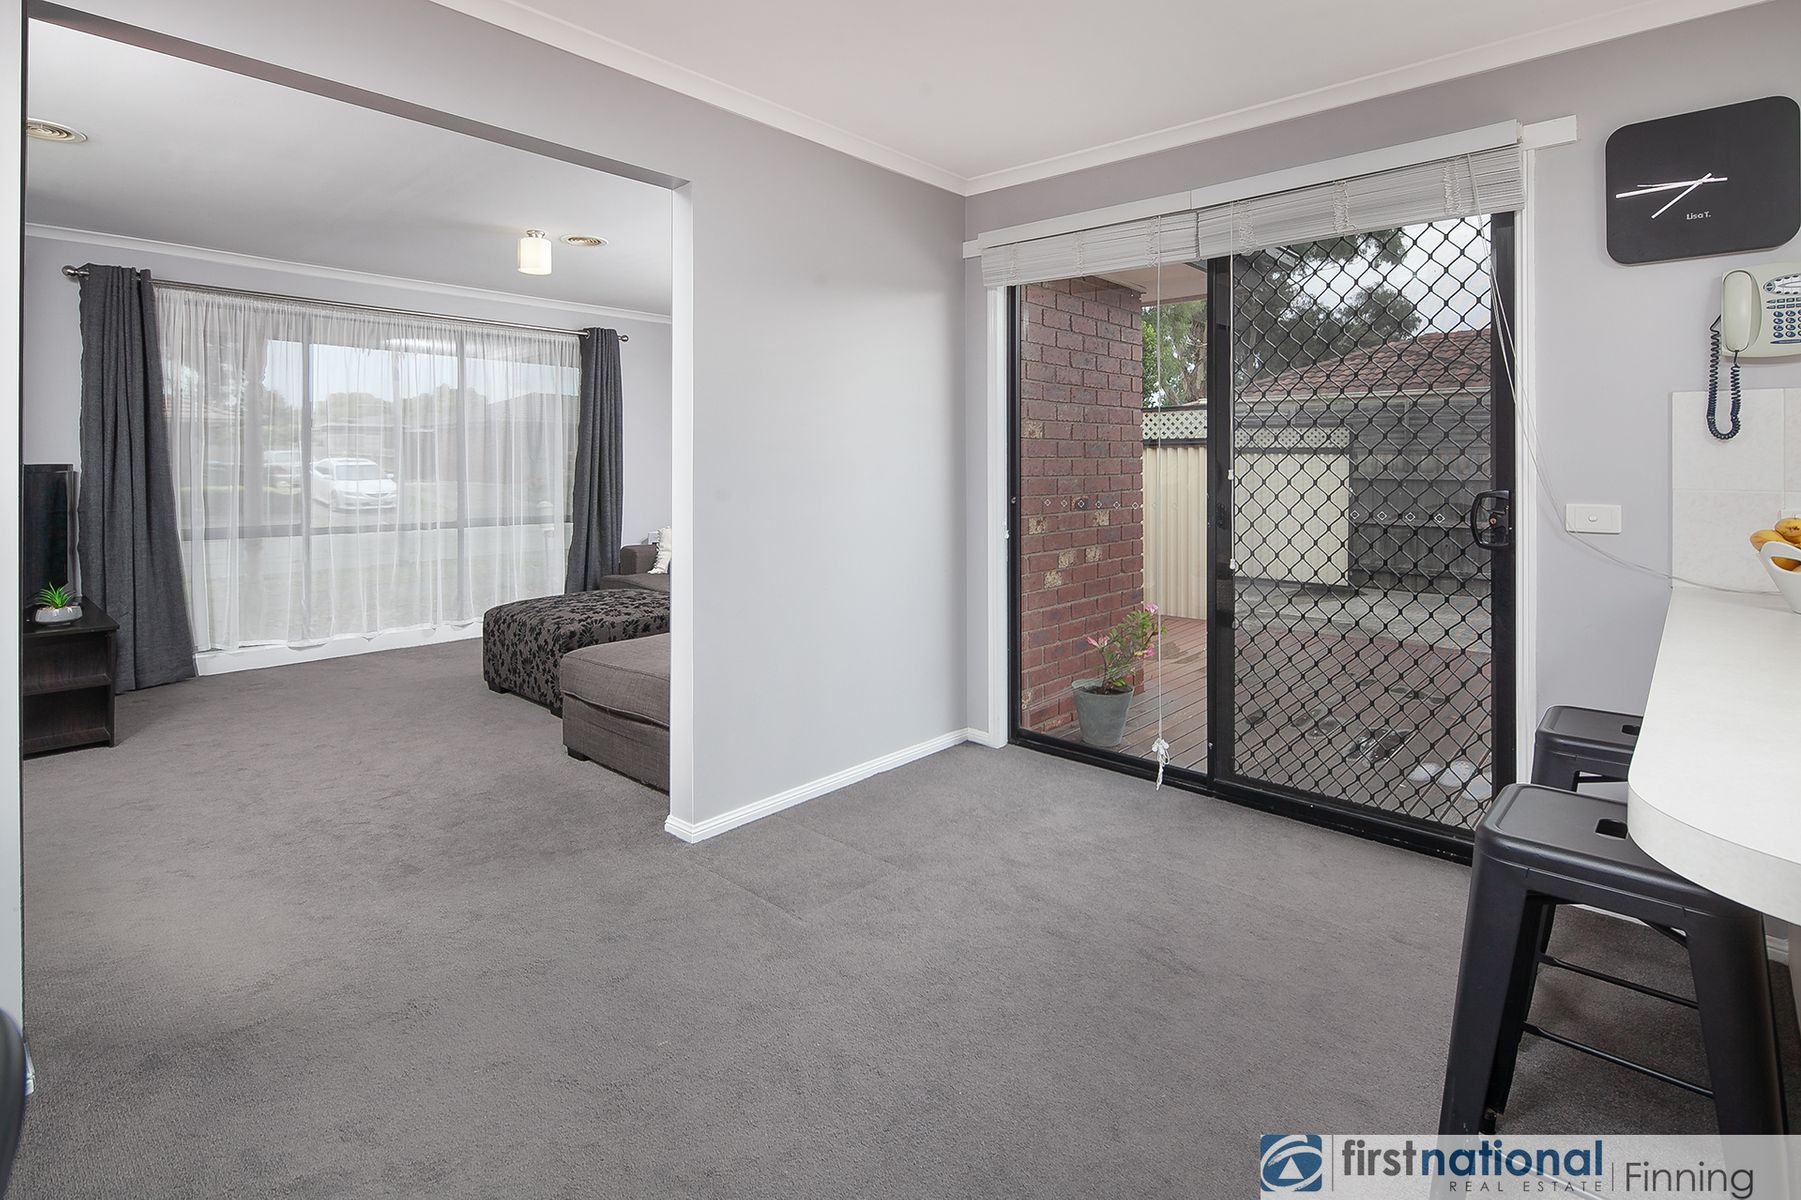 22 Montrose Way, Cranbourne West, VIC 3977